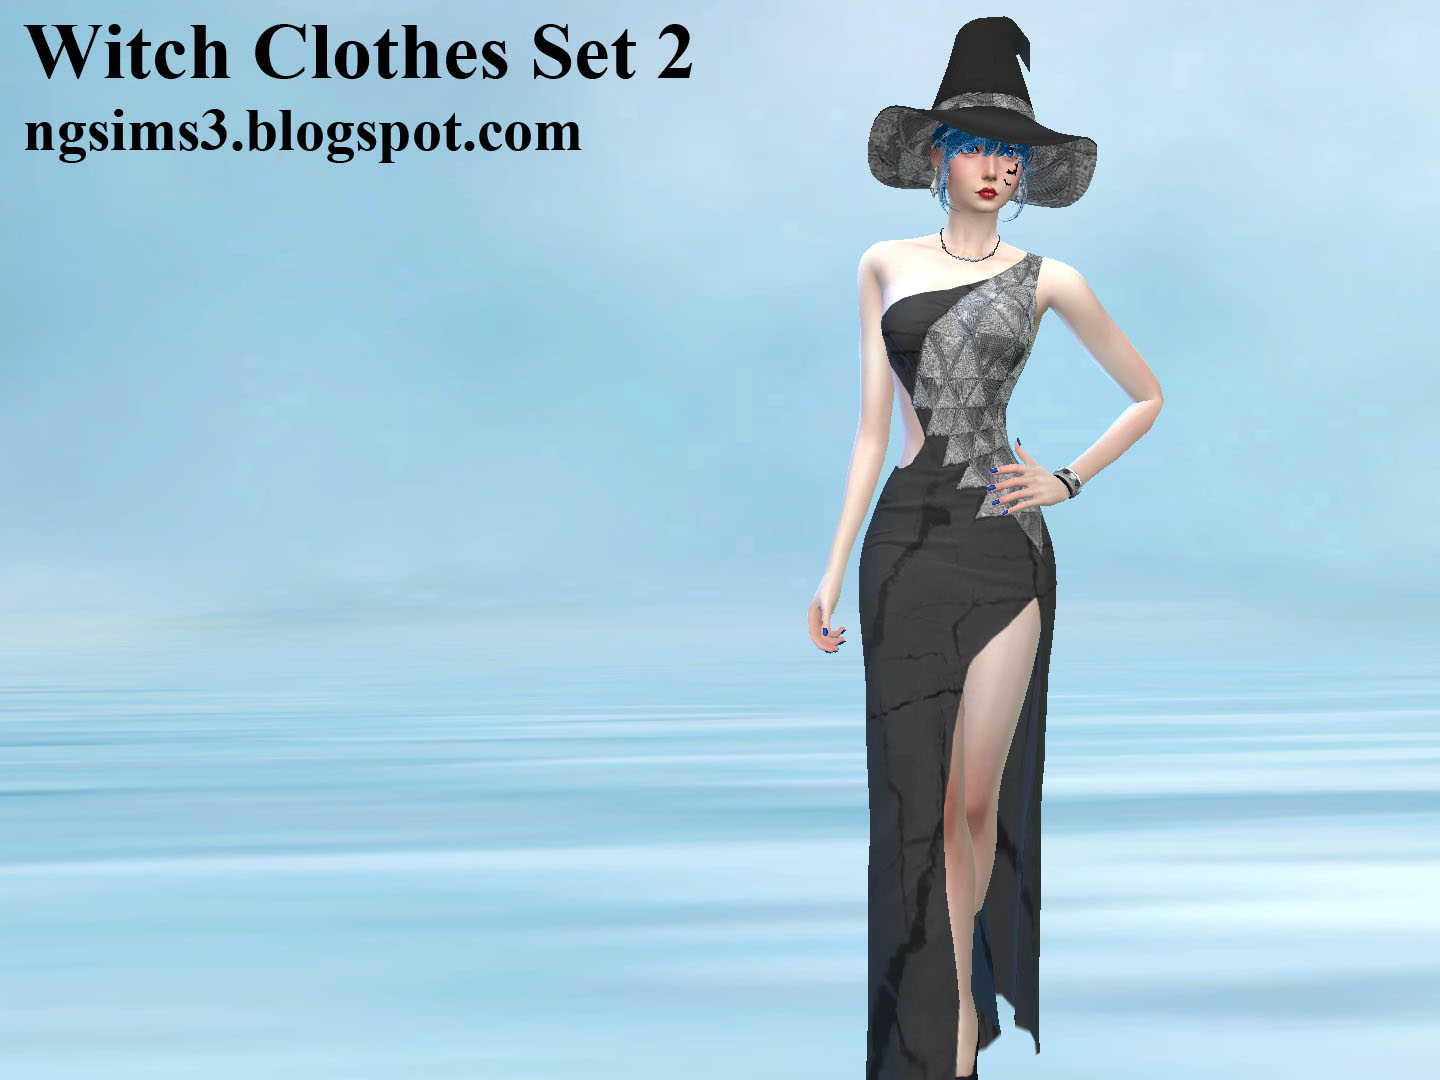 NG Sims 3: Witch Clothes Set 2